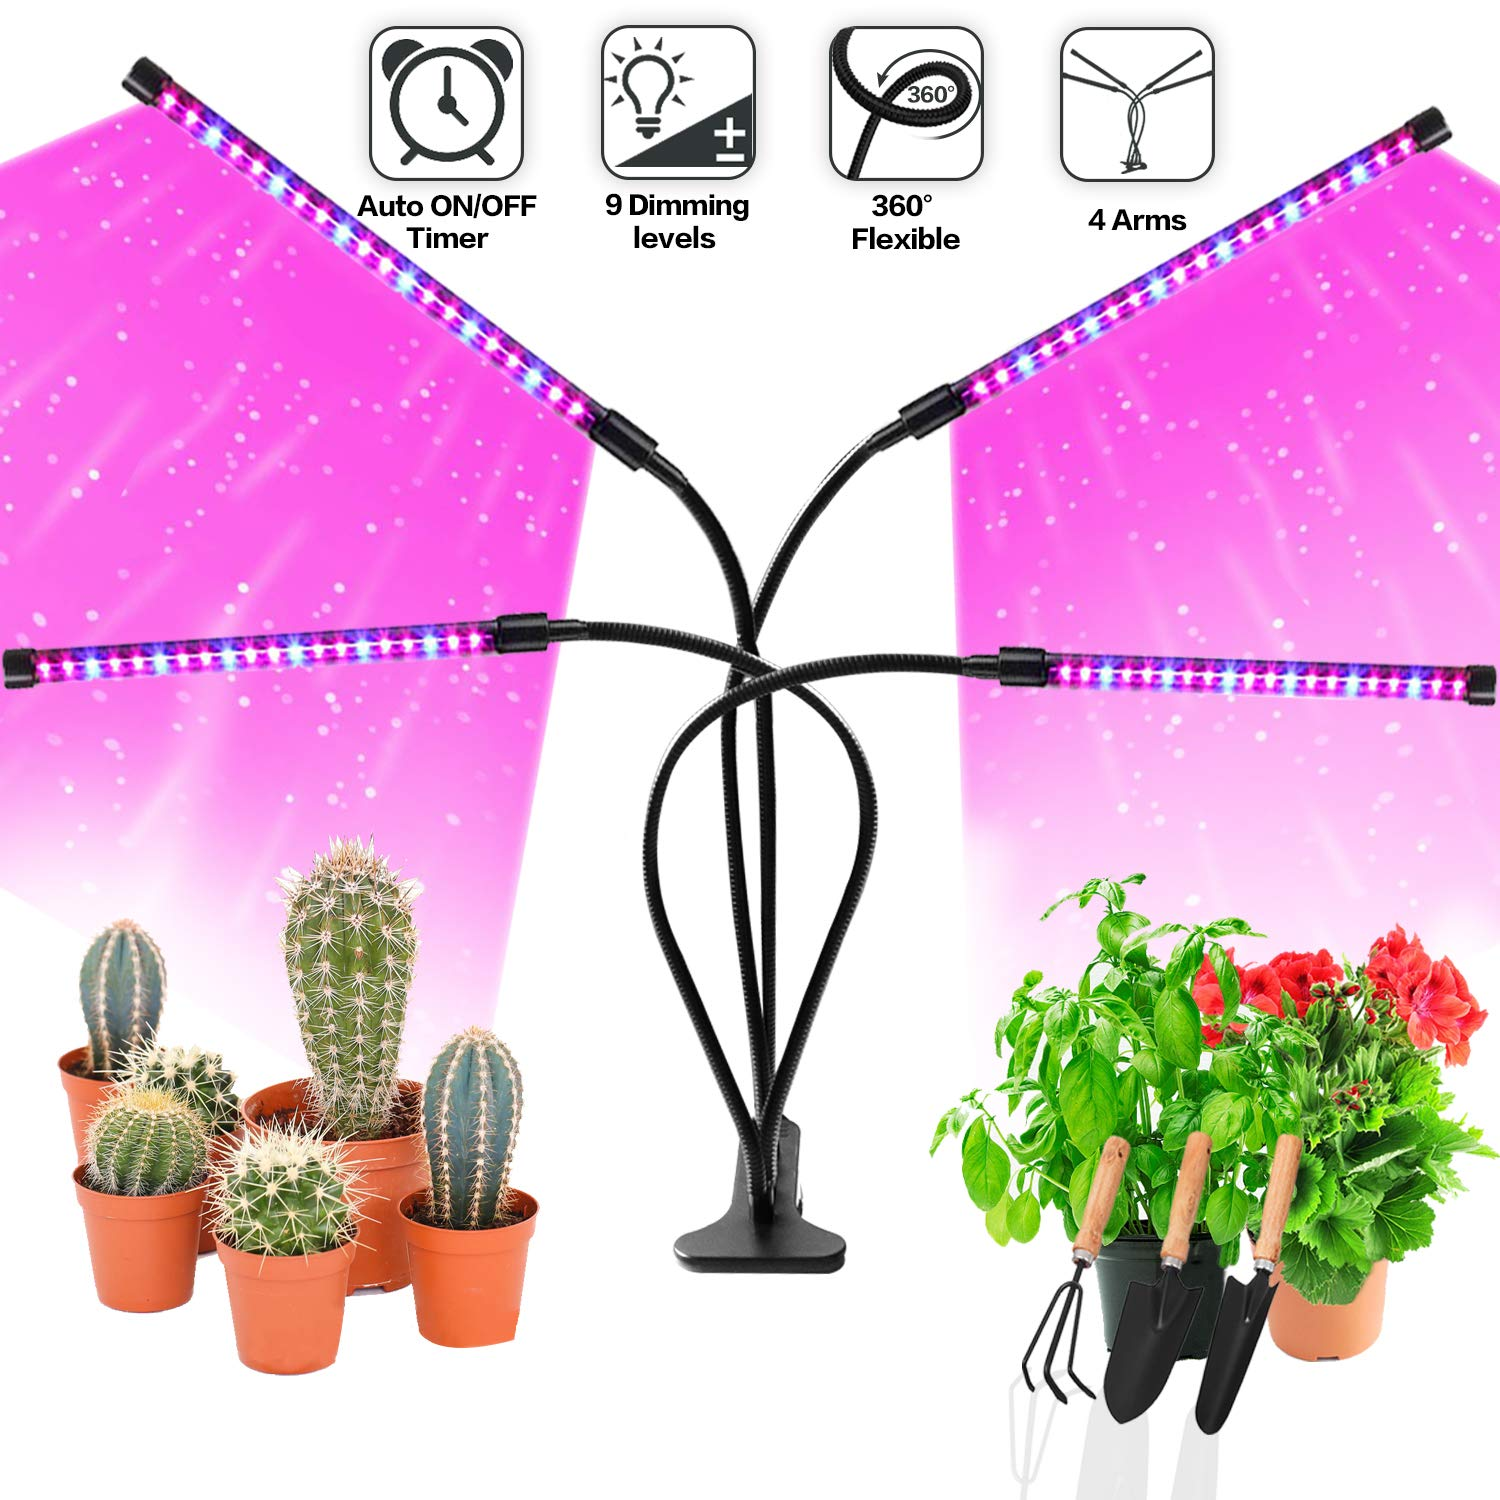 Grow Light Bulb Indoor Plant - Grow Light For Indoor Plants - Led Grow Light - Plant Lights With Clip - Growing Lamp For Plants Growth with Timer by KongKiss